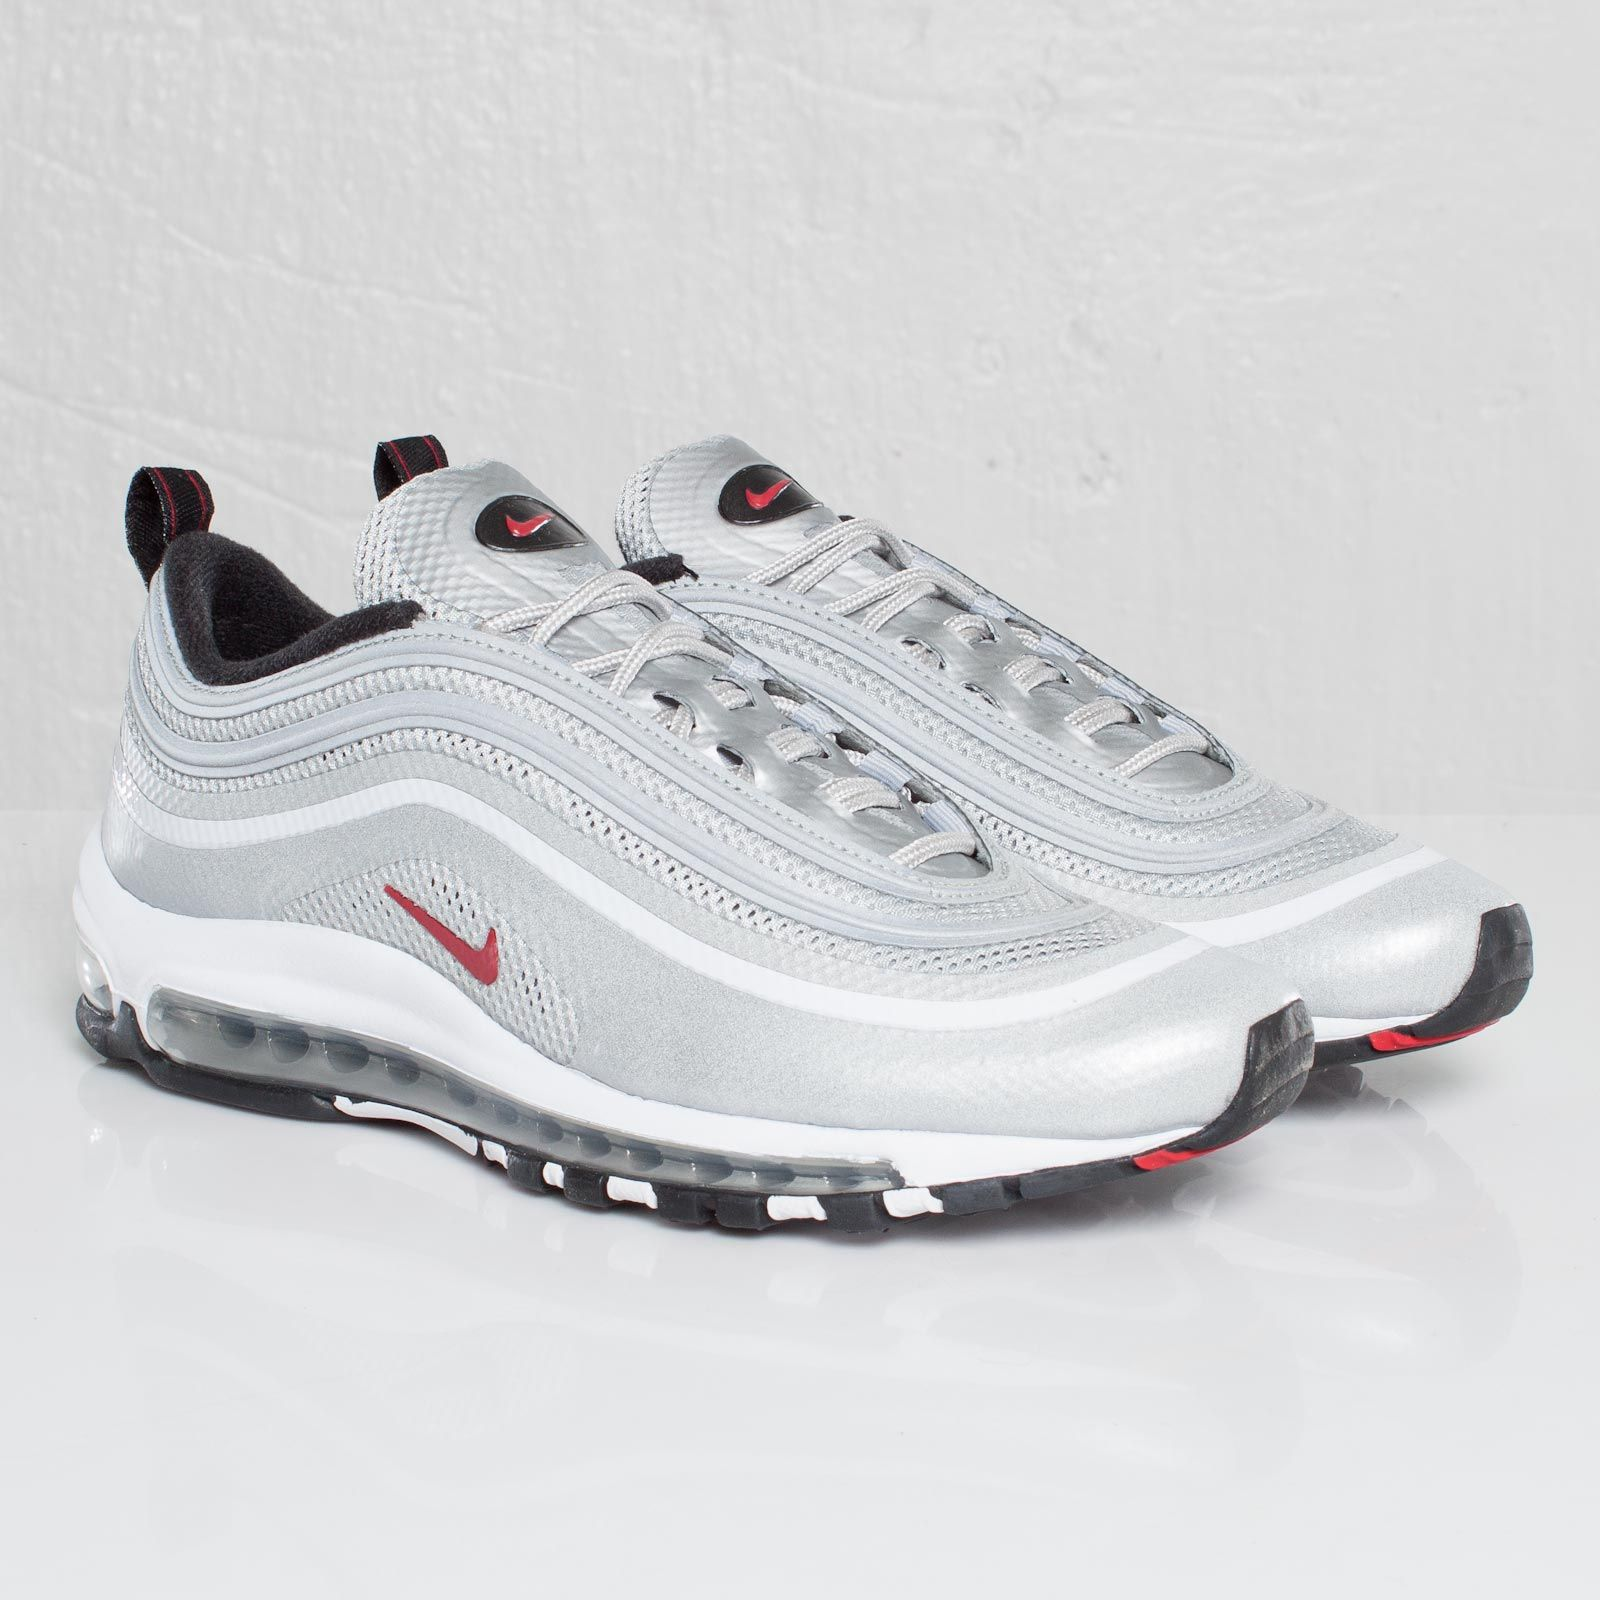 Nike Air Max 97 Hyperfuse Premium 'Metallic Silver/Varsity Red-Black' at  SNS Ahead of its US release date, Stockholm's SNS provides the latest look  at the ...